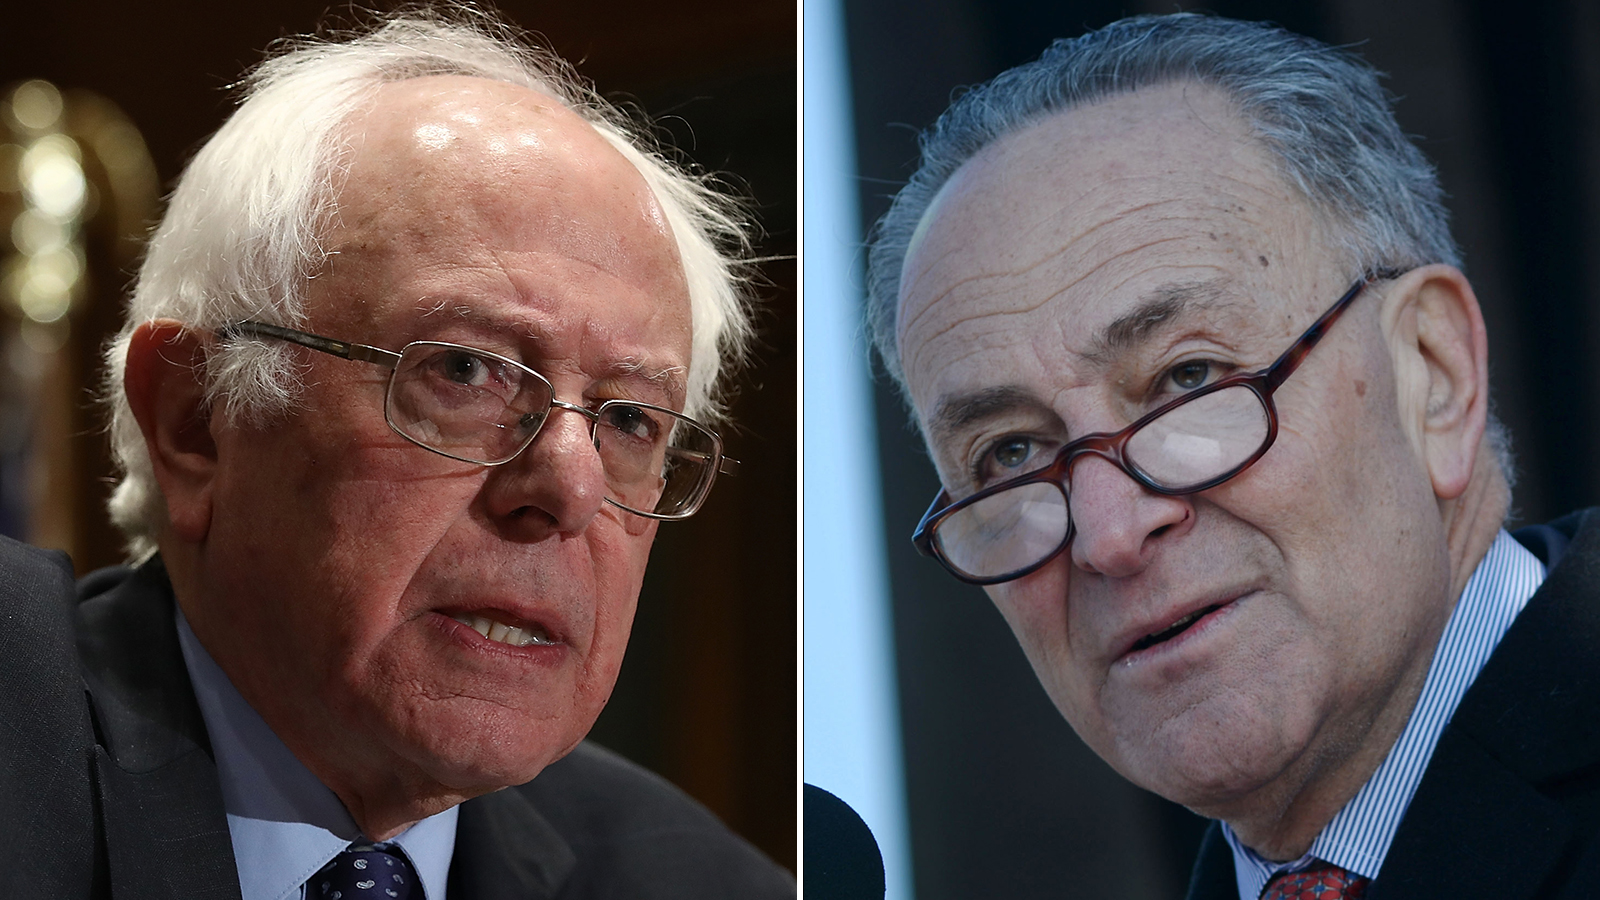 Sanders and Schumer call on McConnell to hold hearings to fight election conspiracy theories